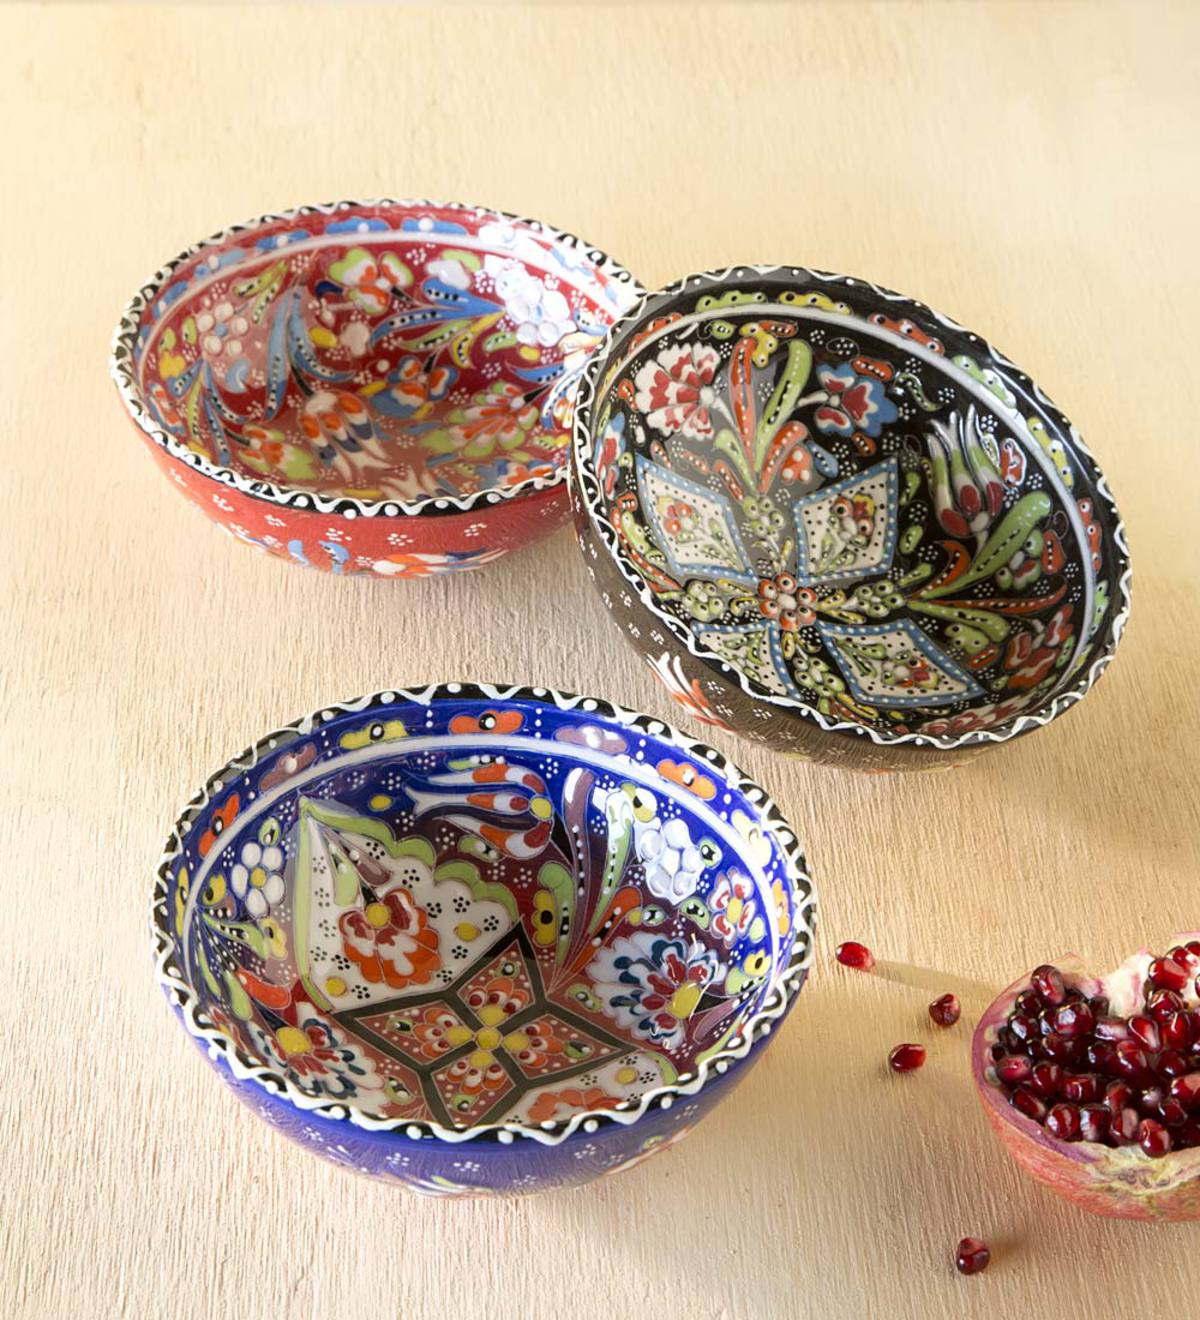 Handcrafted Turkish Small Bowl